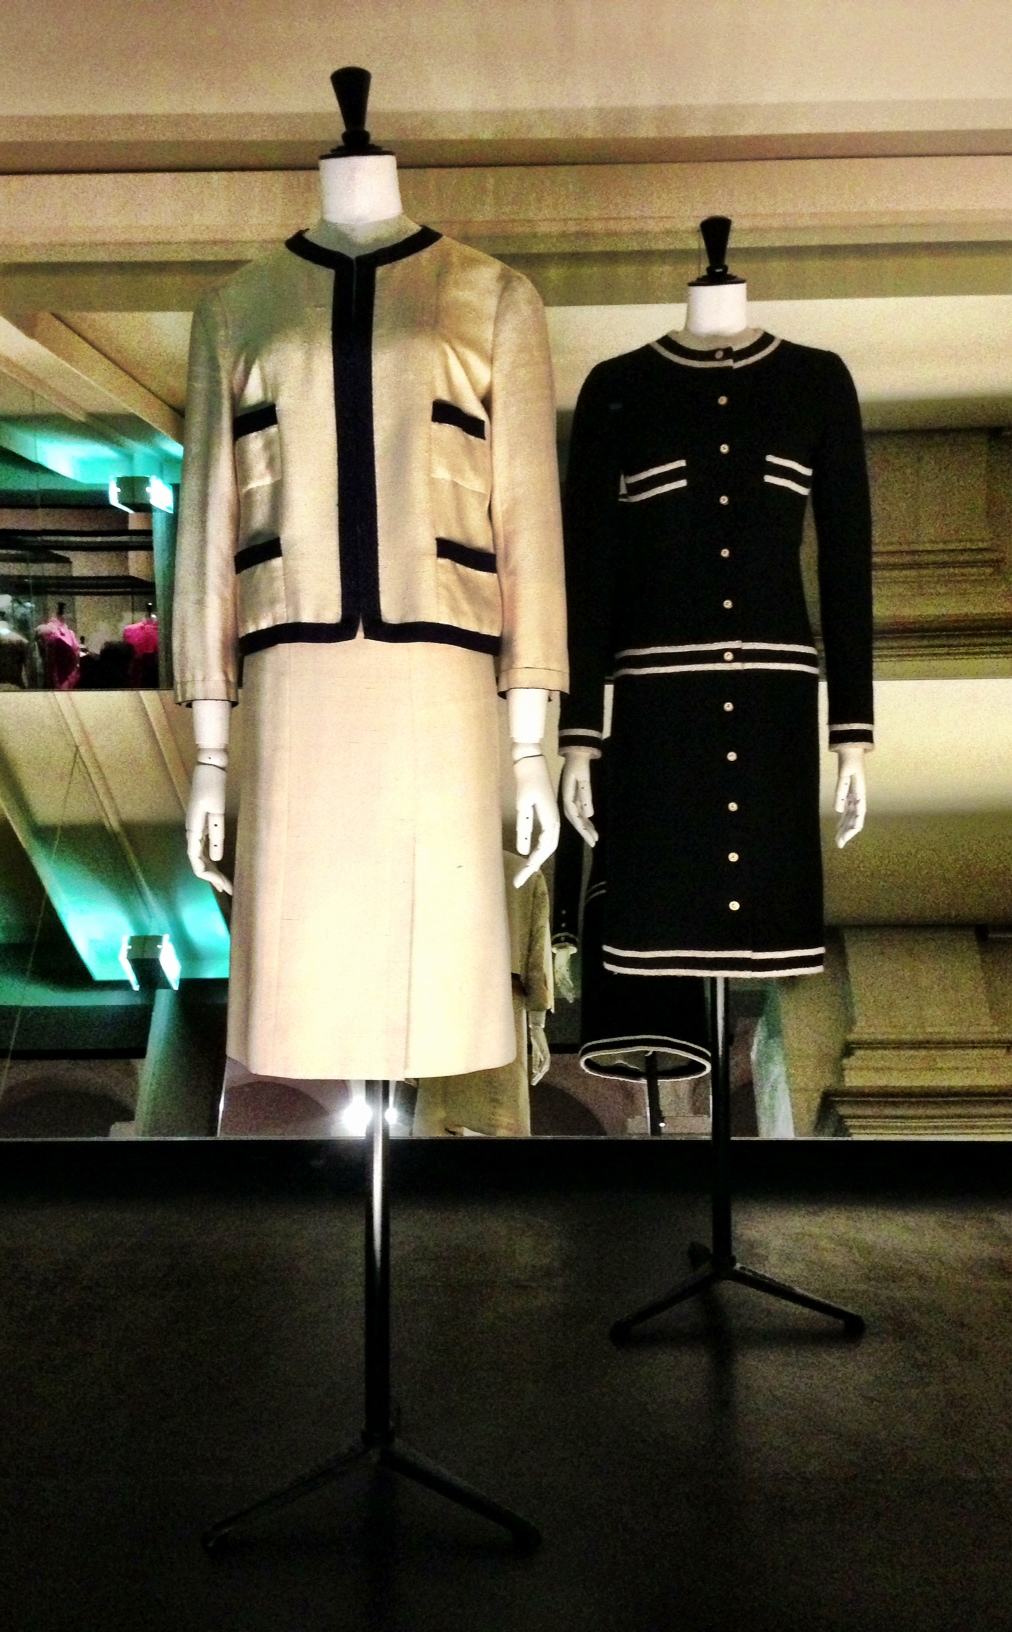 Two iterations of Chanel suits.